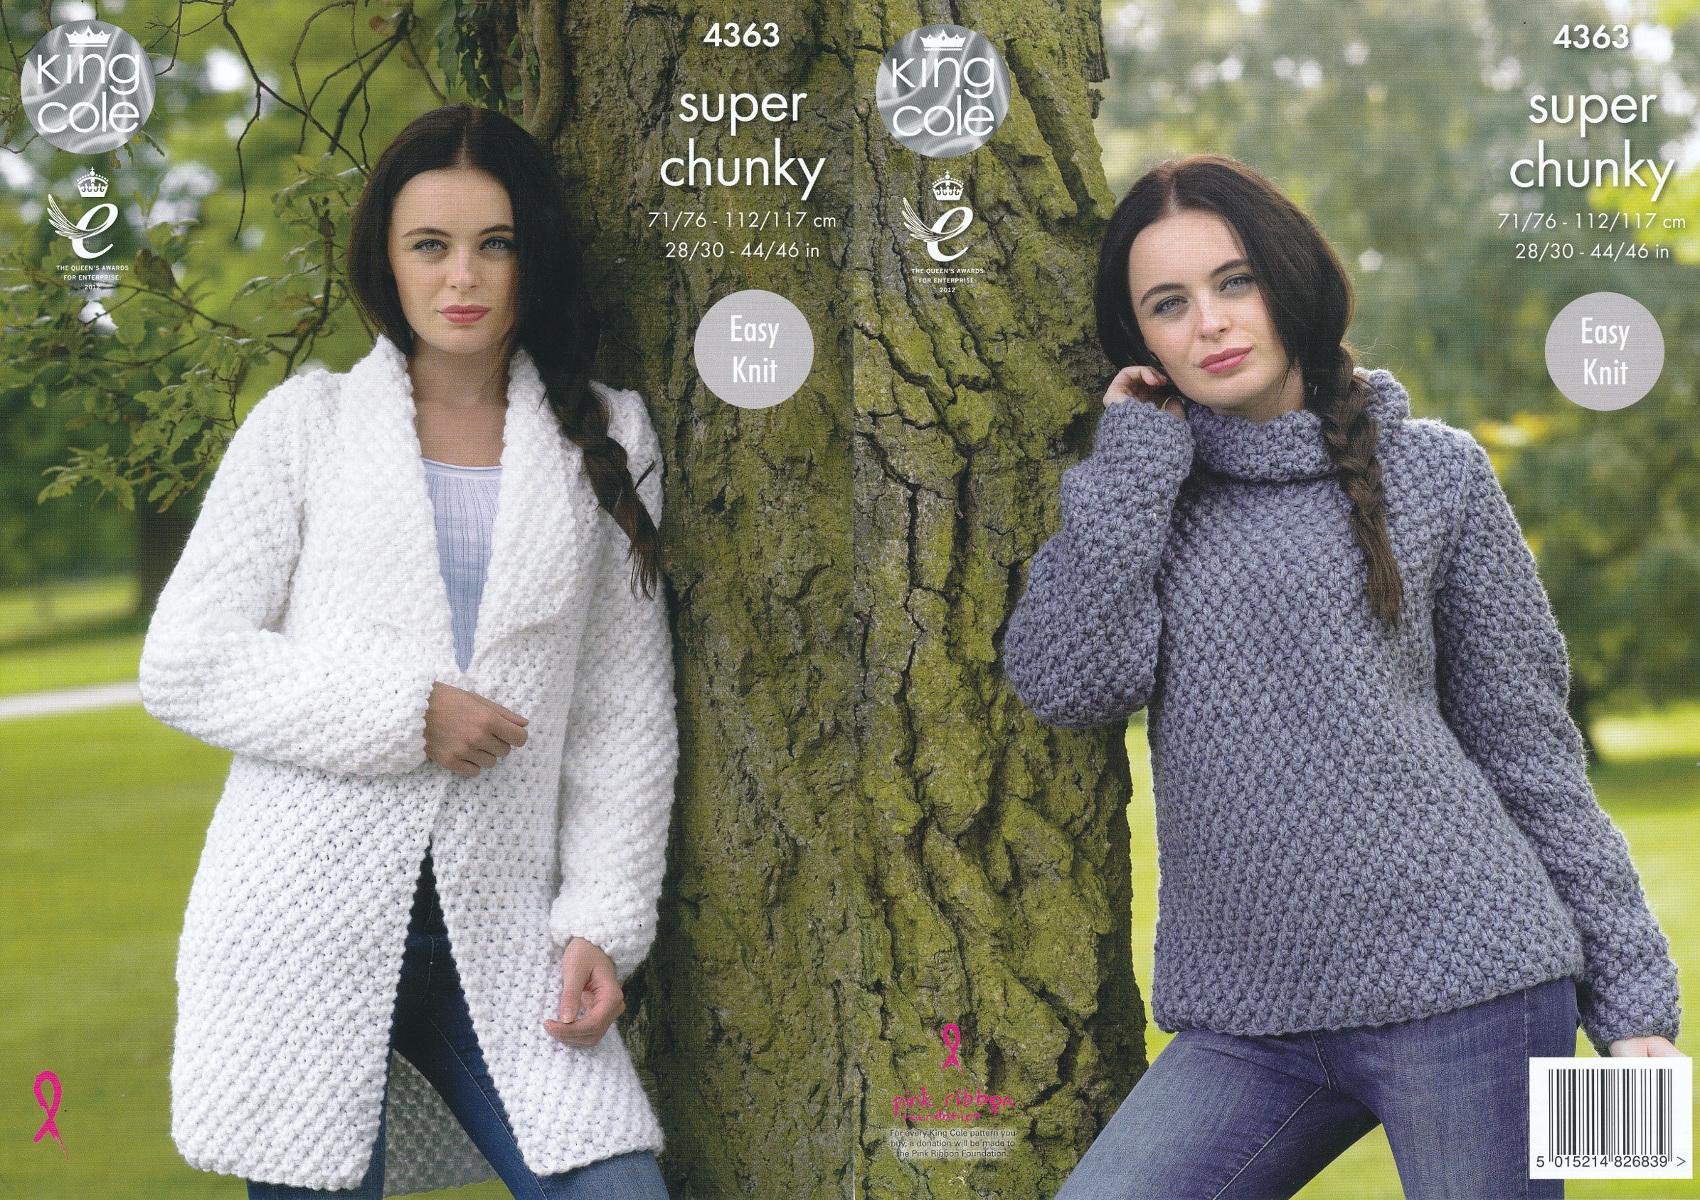 9390e3a30bc Ladies Super Chunky Knitting Pattern King Cole Easy Knit Sweater   Jacket  4363